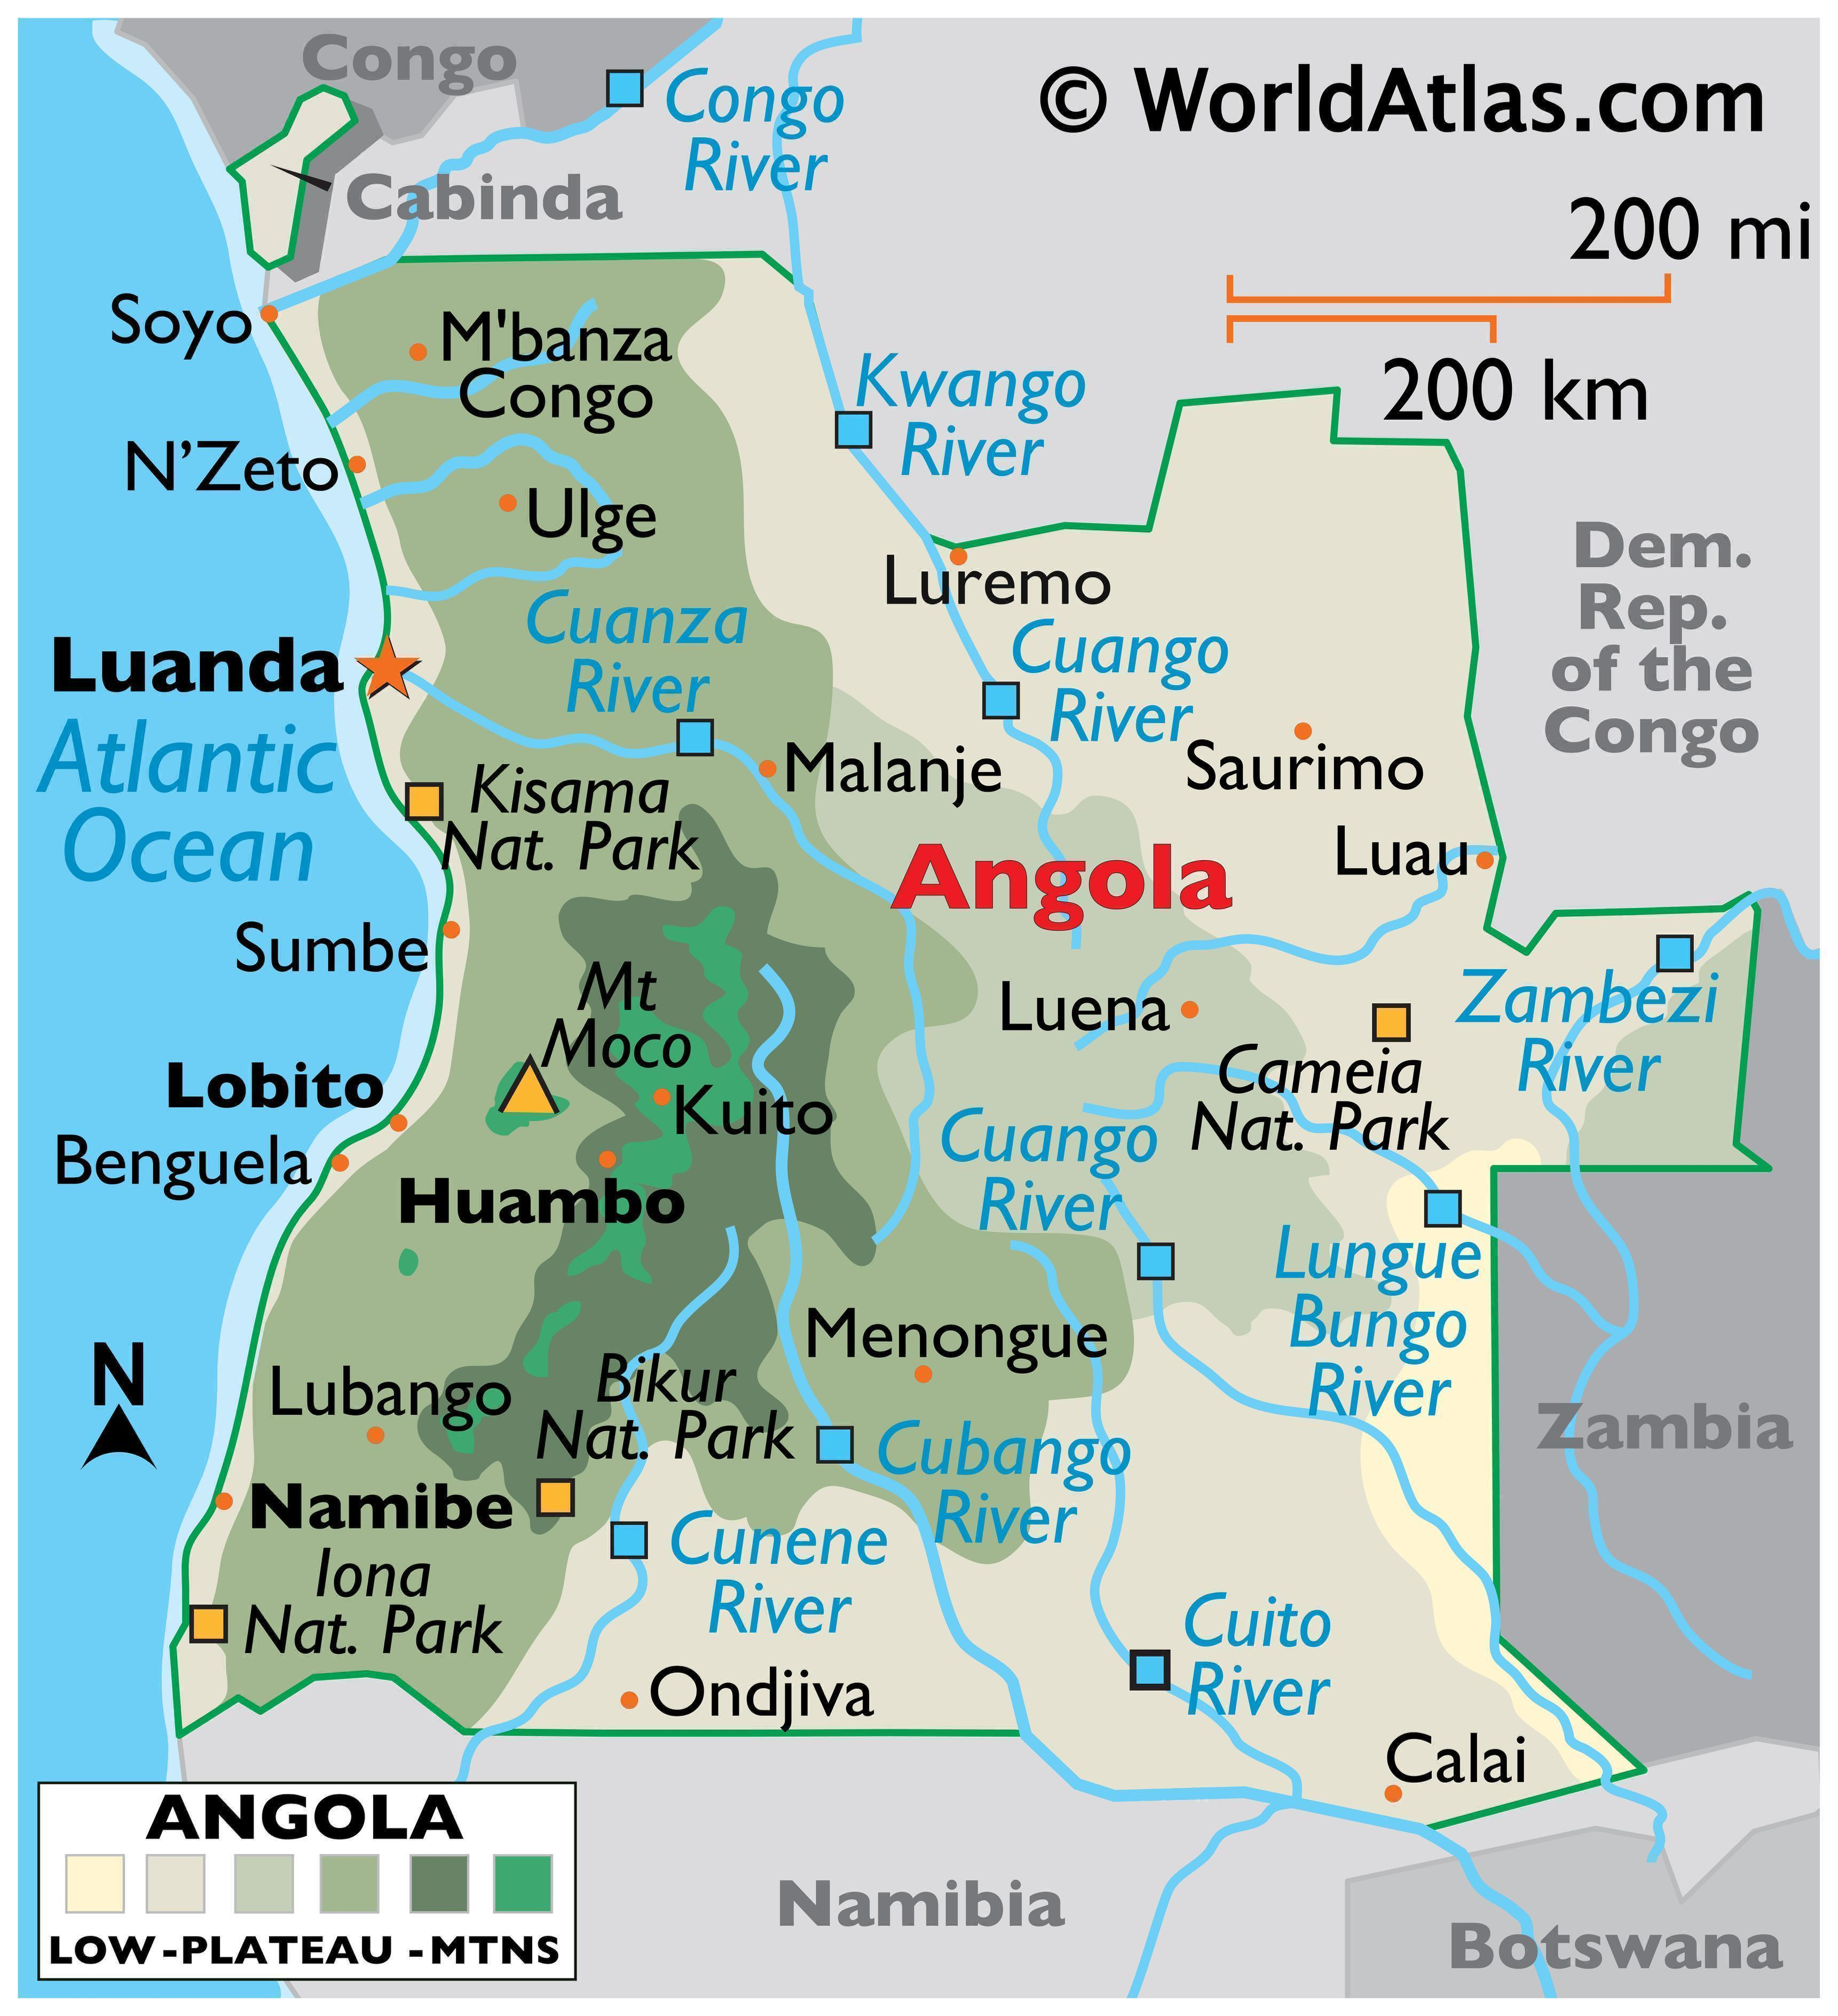 Physical map of Angola showing its major national parks, cities, and rivers. Displayed on the map is the highest point Mount Moco as well as its capital city of Lunda. Also featured are Angola's international boundaries.